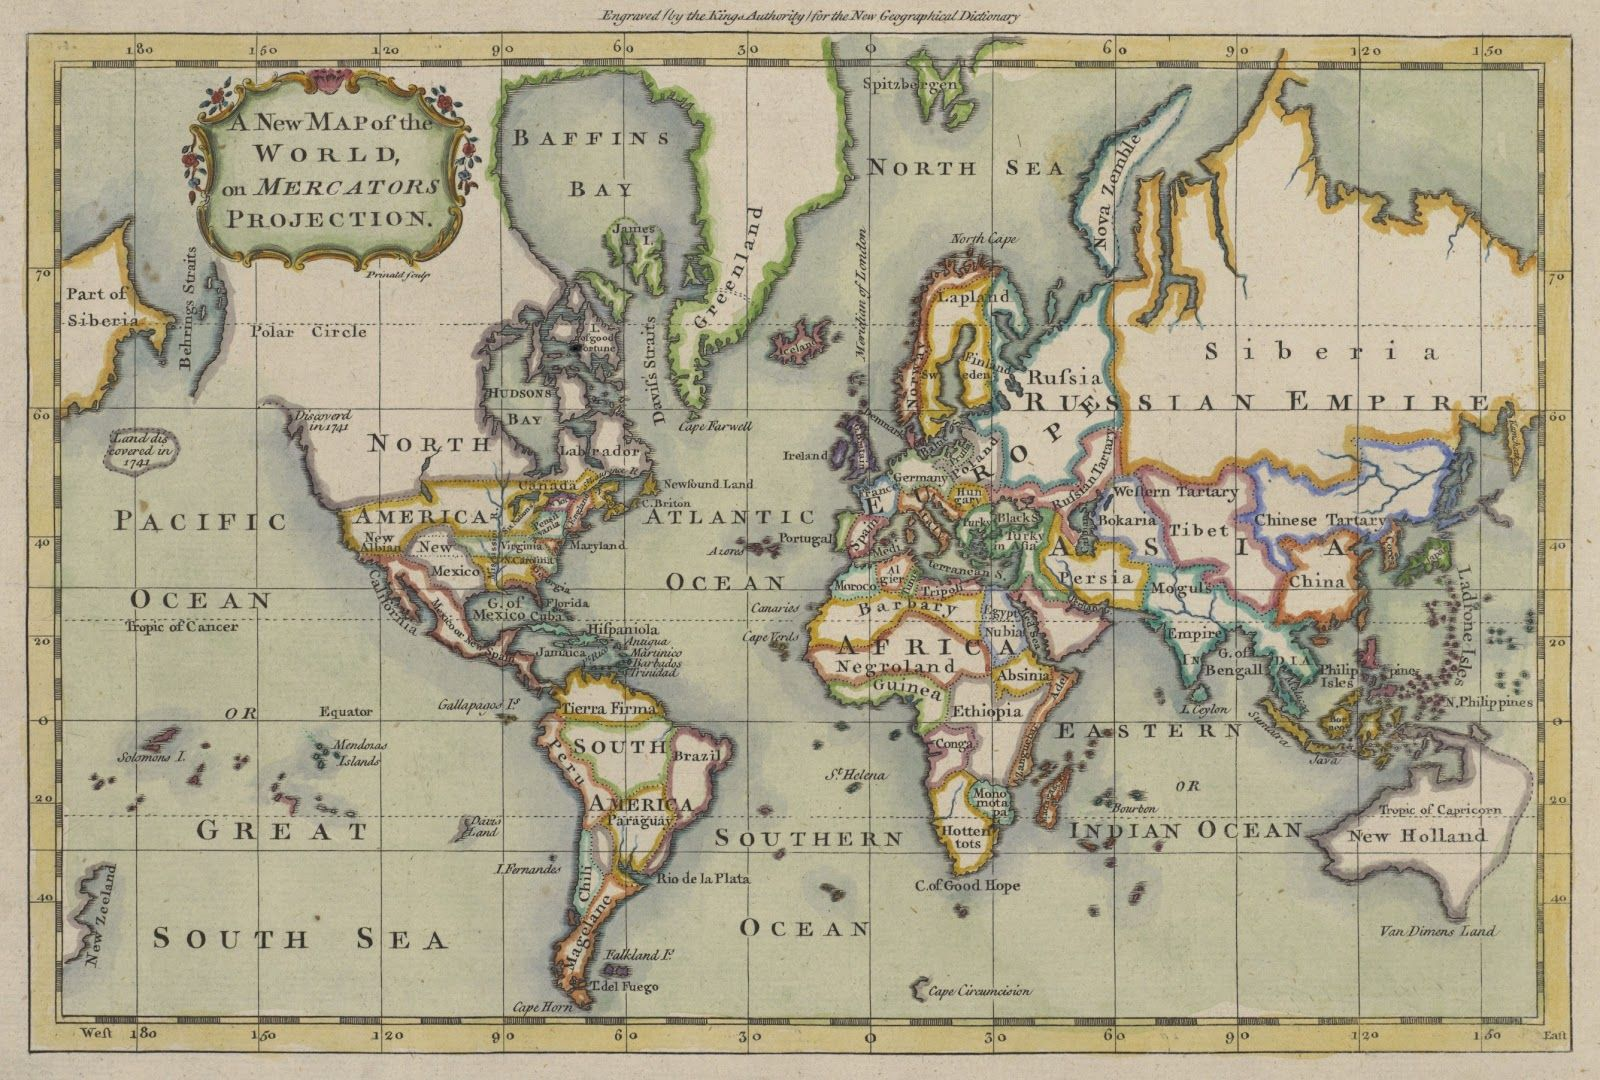 18th Century World Map On Mercartor S Projection Engraved By The